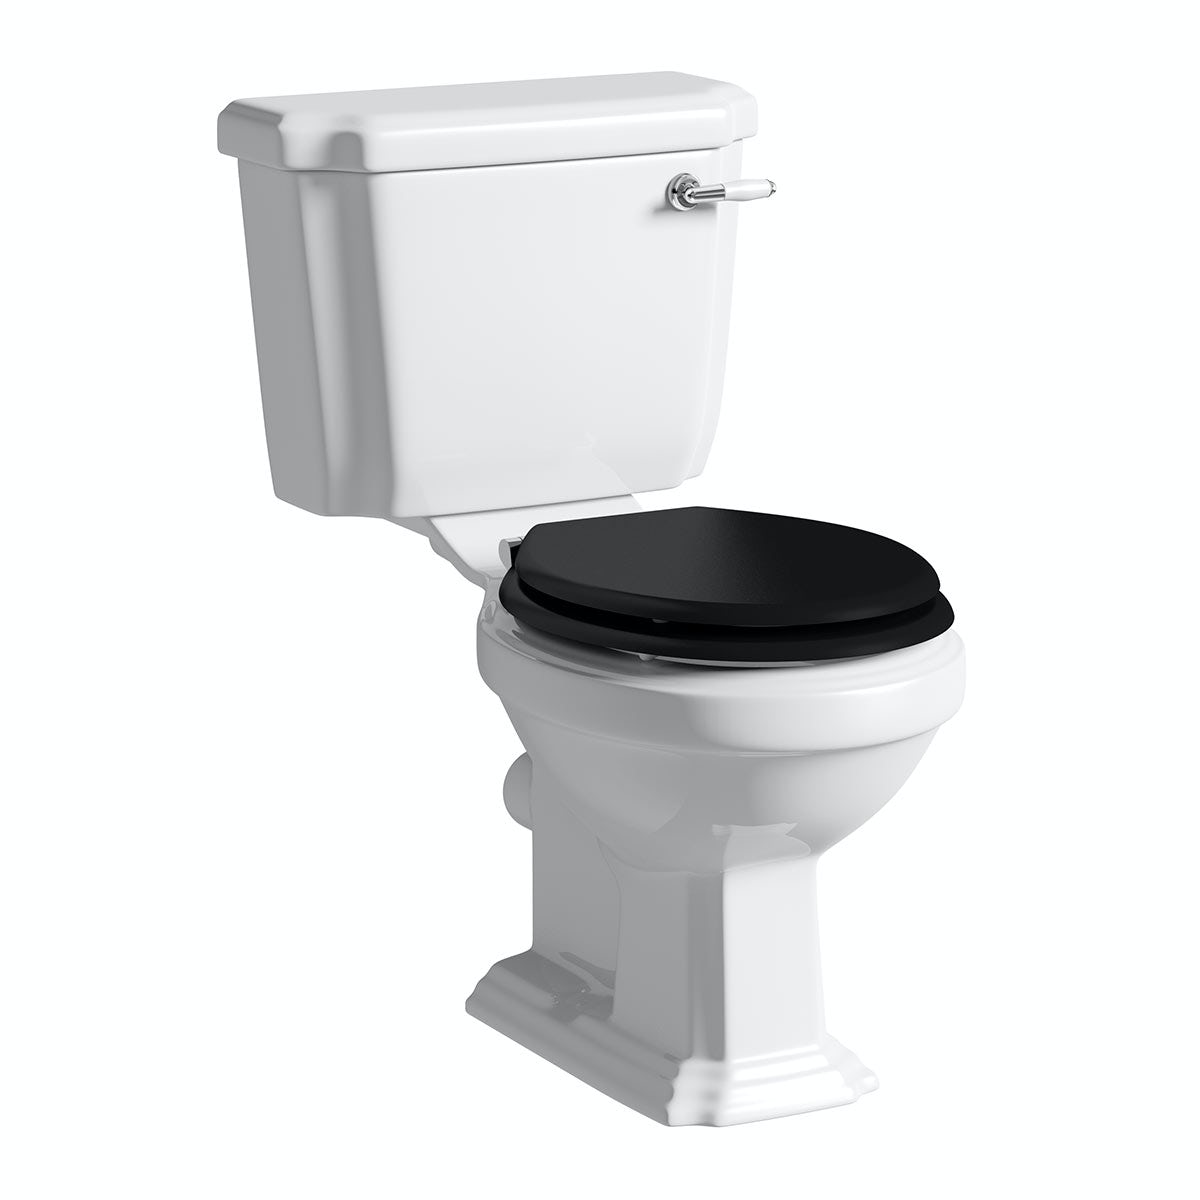 White Toilet With Black Seat. Dulwich close coupled toilet with black wooden seat  VictoriaPlum com